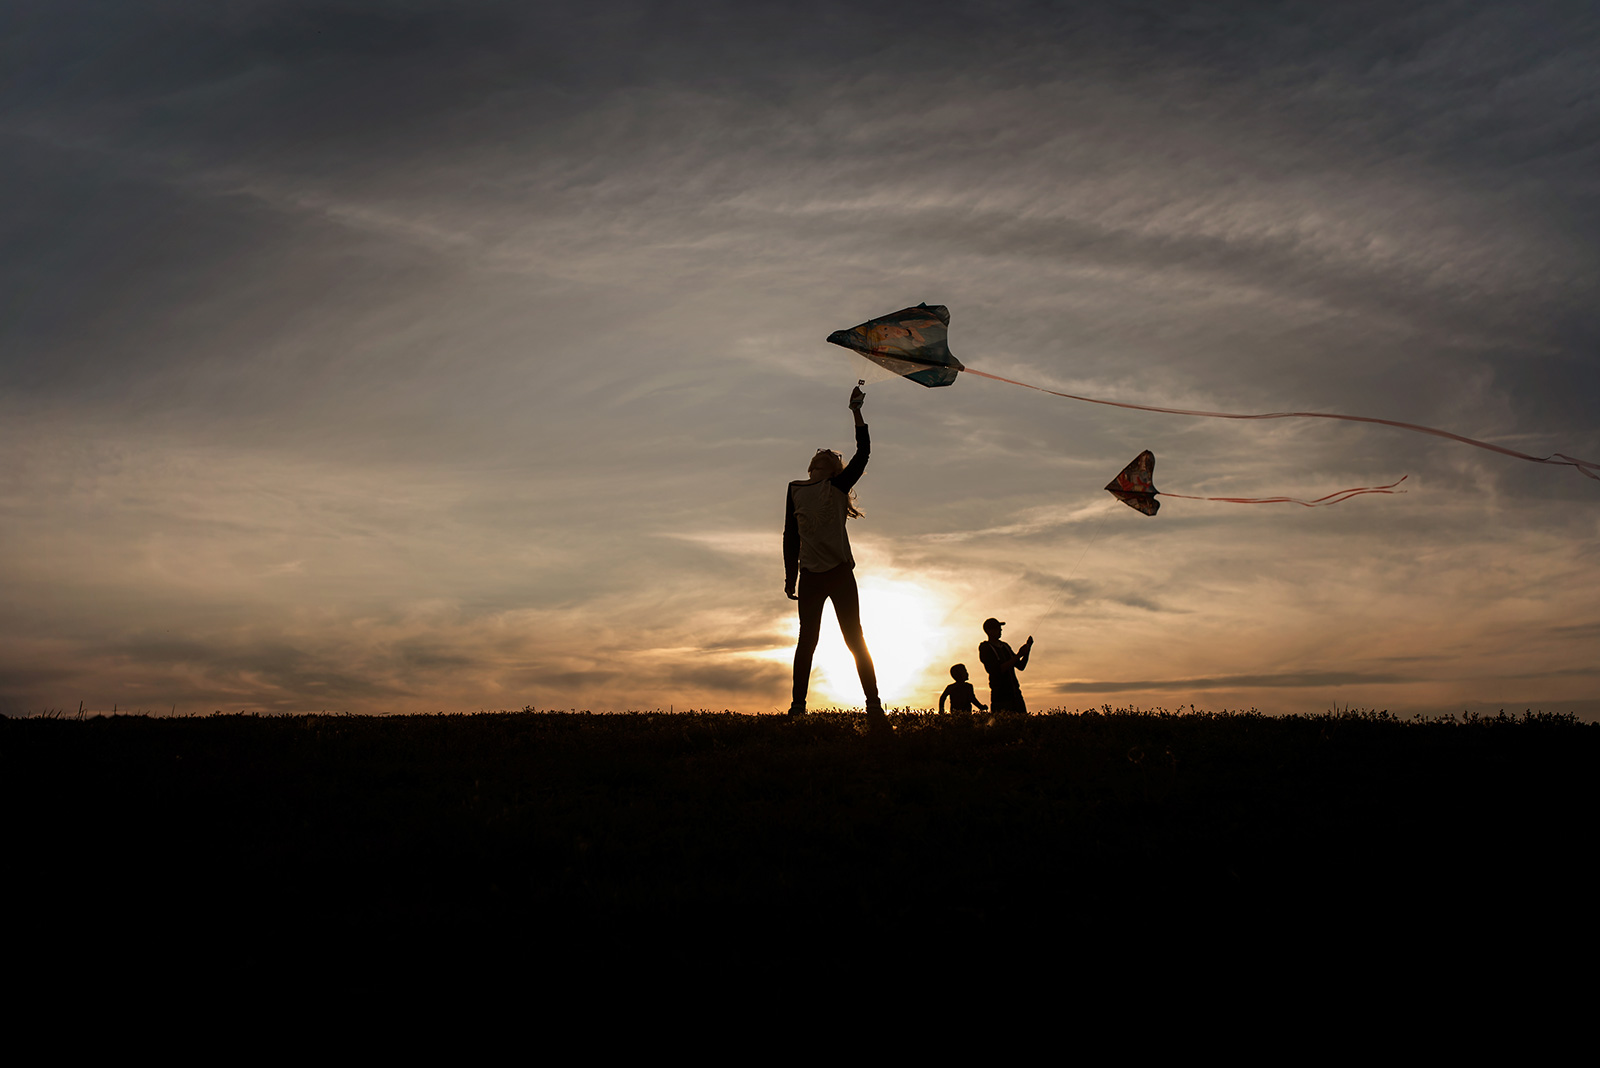 people-silhouette-kite-flying-Melissa-Richard